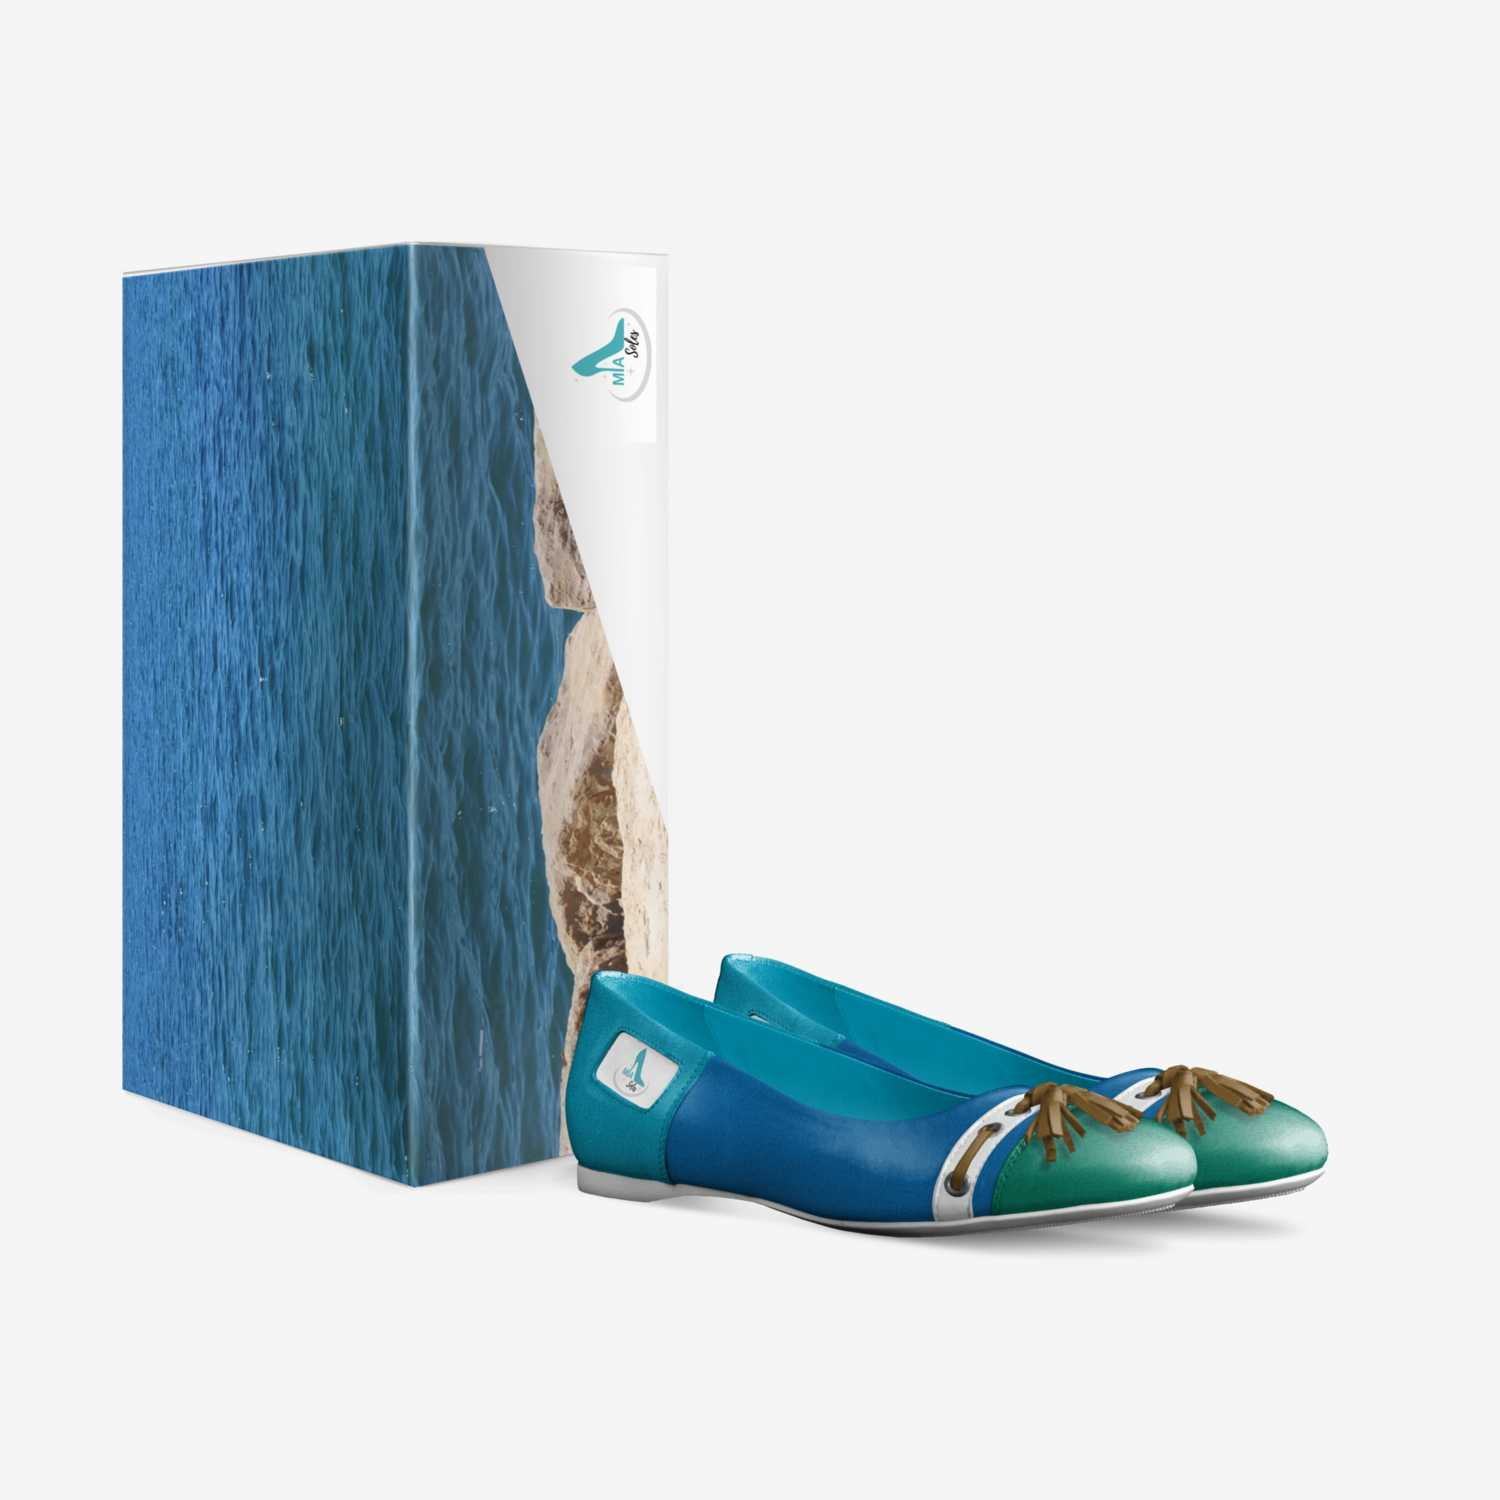 Aqualline custom made in Italy shoes by Aminah Khan | Box view